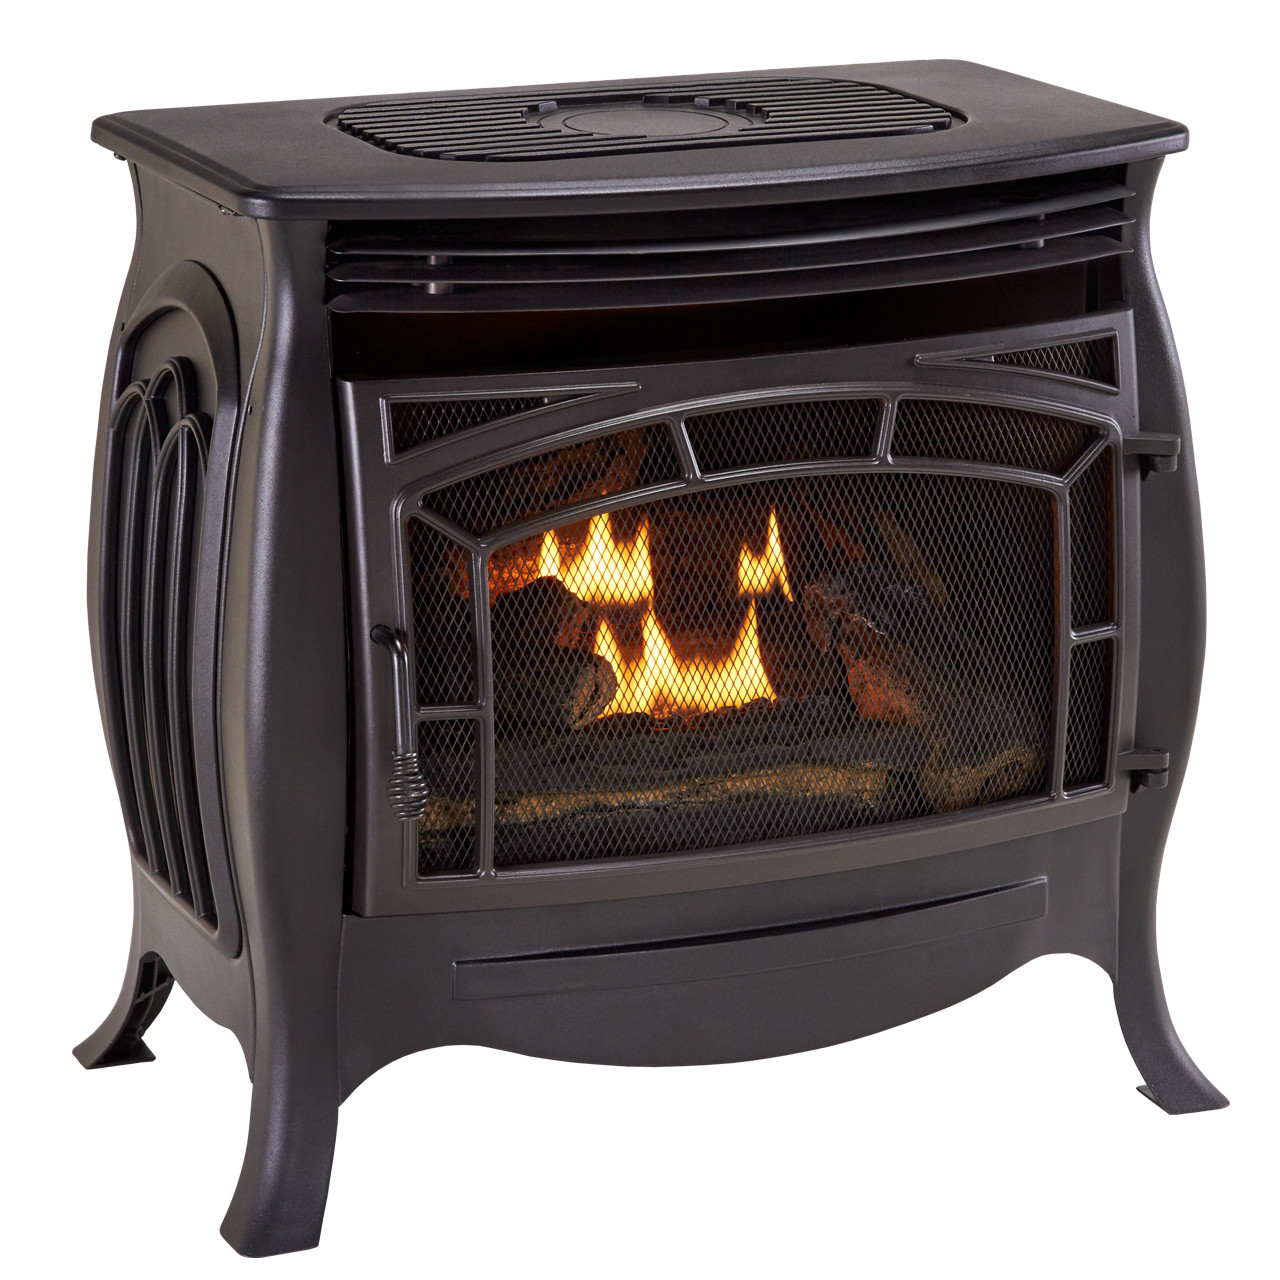 Duluth Forge Dual Fuel Ventless Gas Stove Model Fdsr25 Matte Finish Remote Control Factory Buys Direct